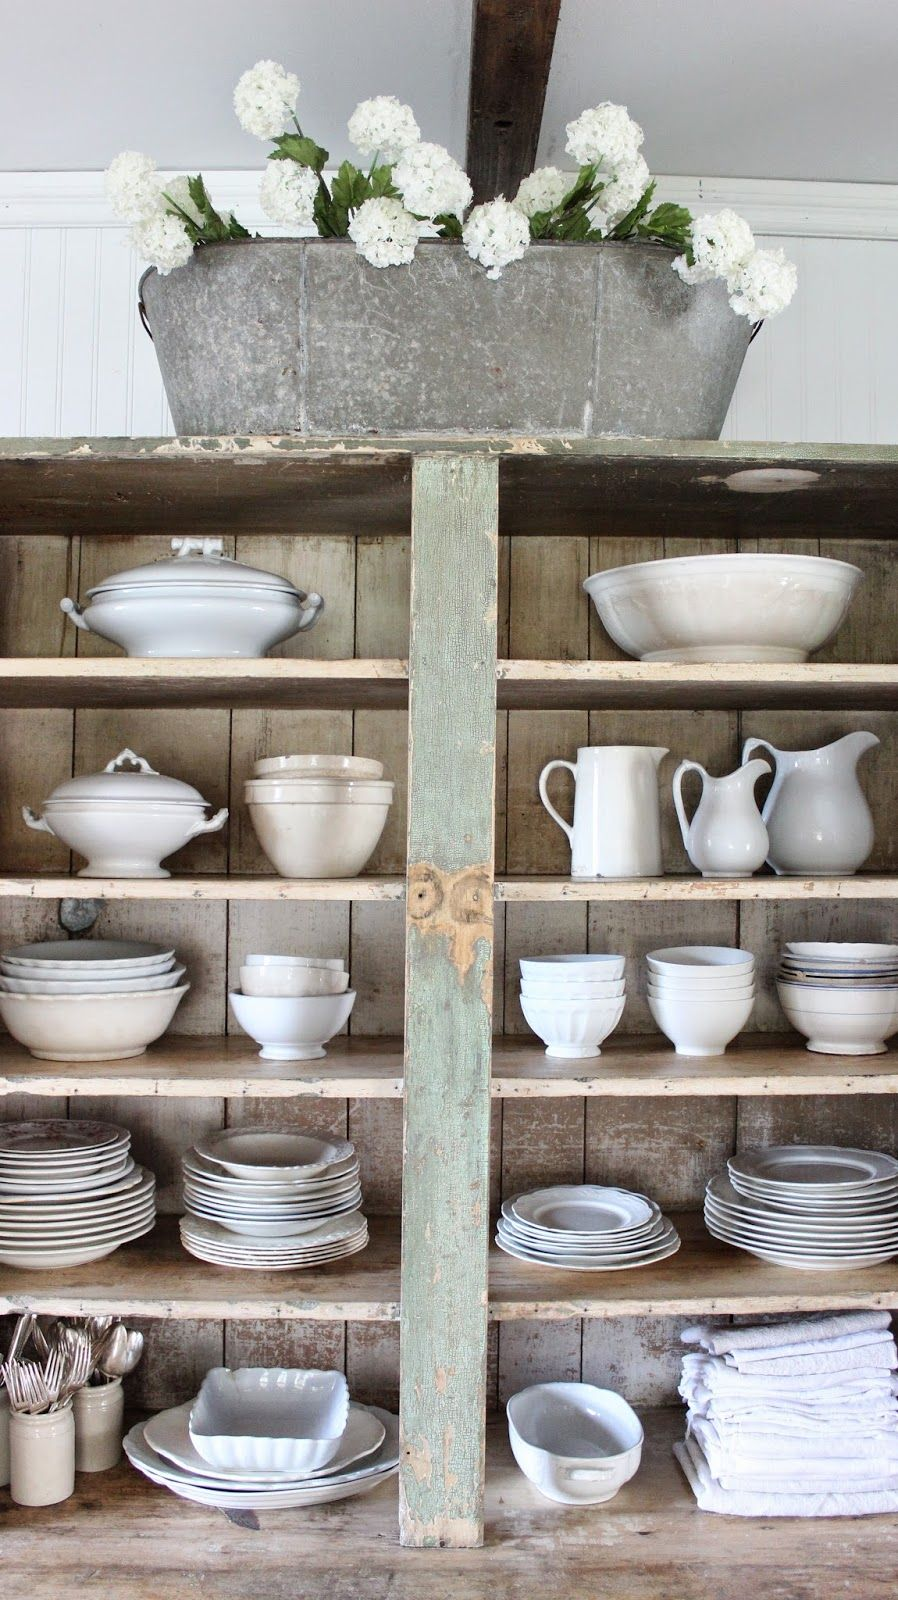 Country decorating ideas flea market style - Cupboard Shelves Filled With Ironstone Home Decor Decorating Ideas